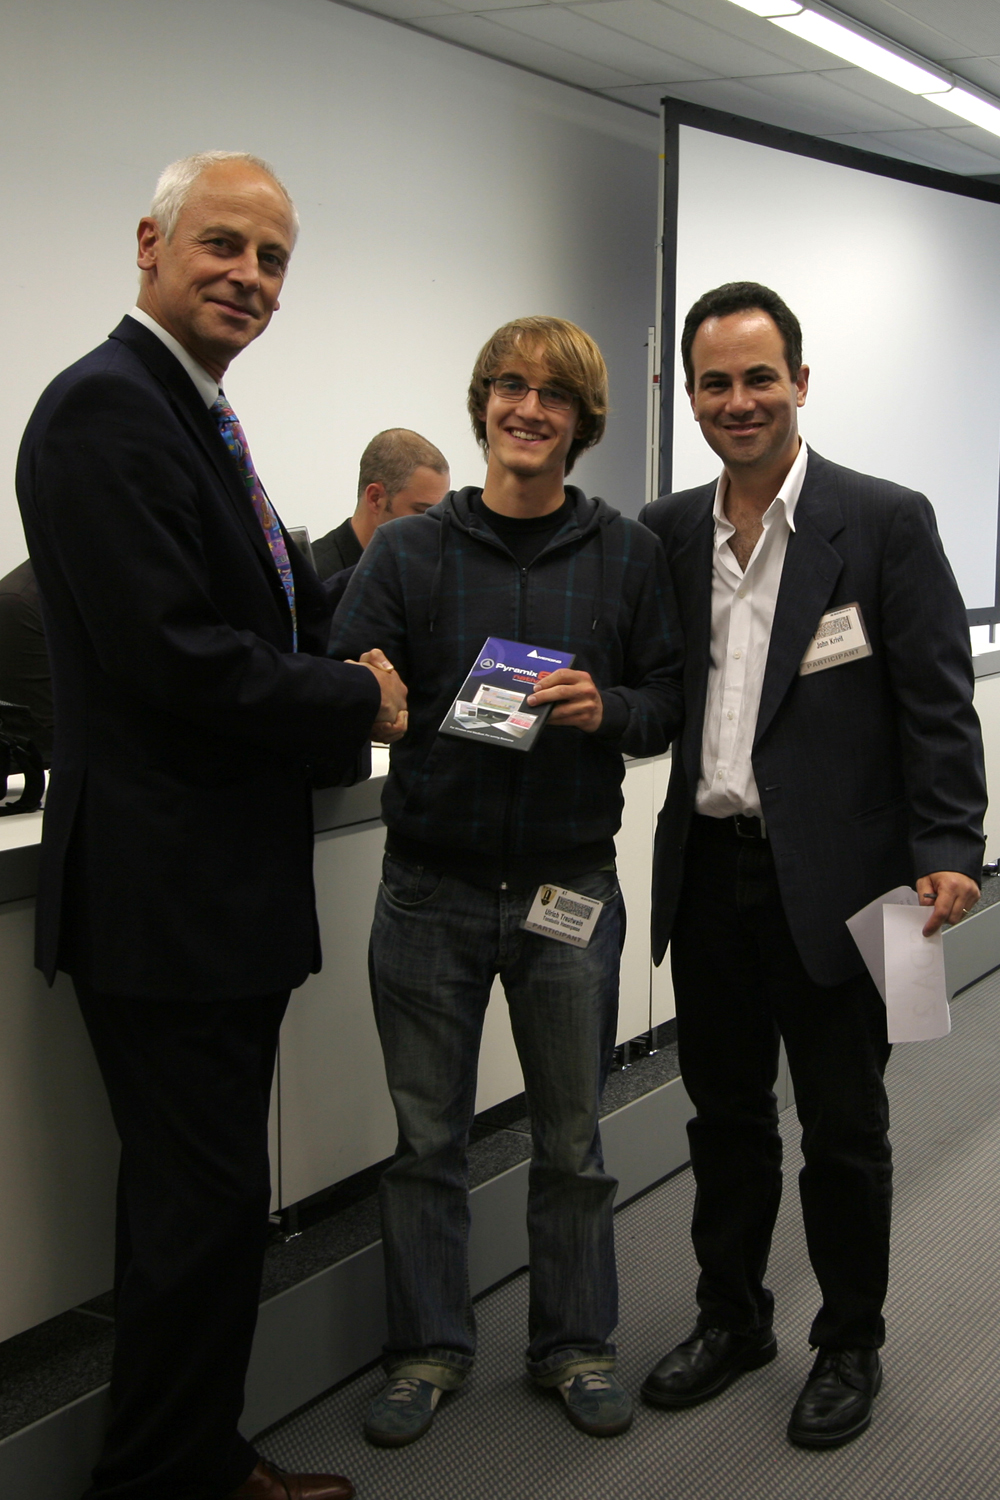 Ulrich Treutwein (centre) receives his copy of the Pyramix Native Mastering Pack from Merging Technologies President Claude Cellier (left) and John Krivit of the AES (right).